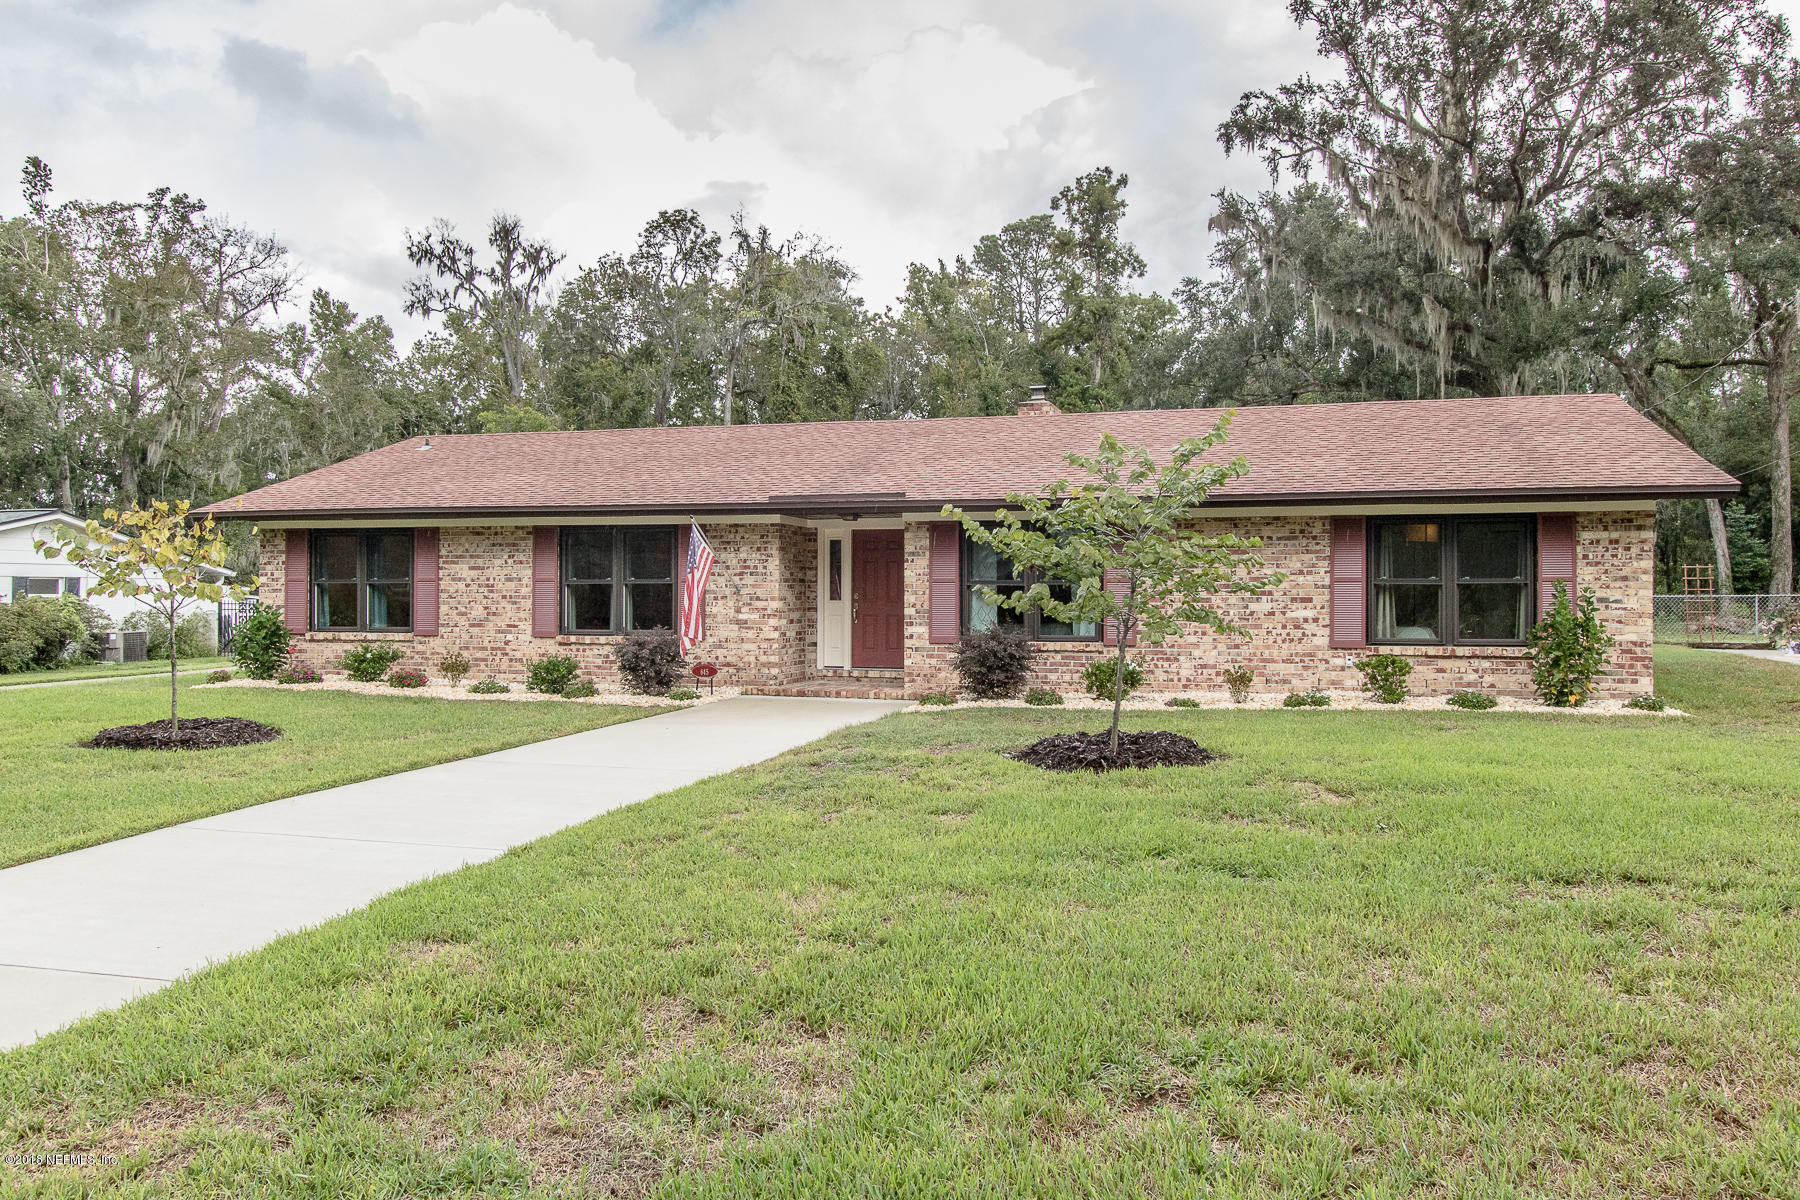 645 WINFRED, ORANGE PARK, FLORIDA 32073, 4 Bedrooms Bedrooms, ,2 BathroomsBathrooms,Residential - single family,For sale,WINFRED,960526